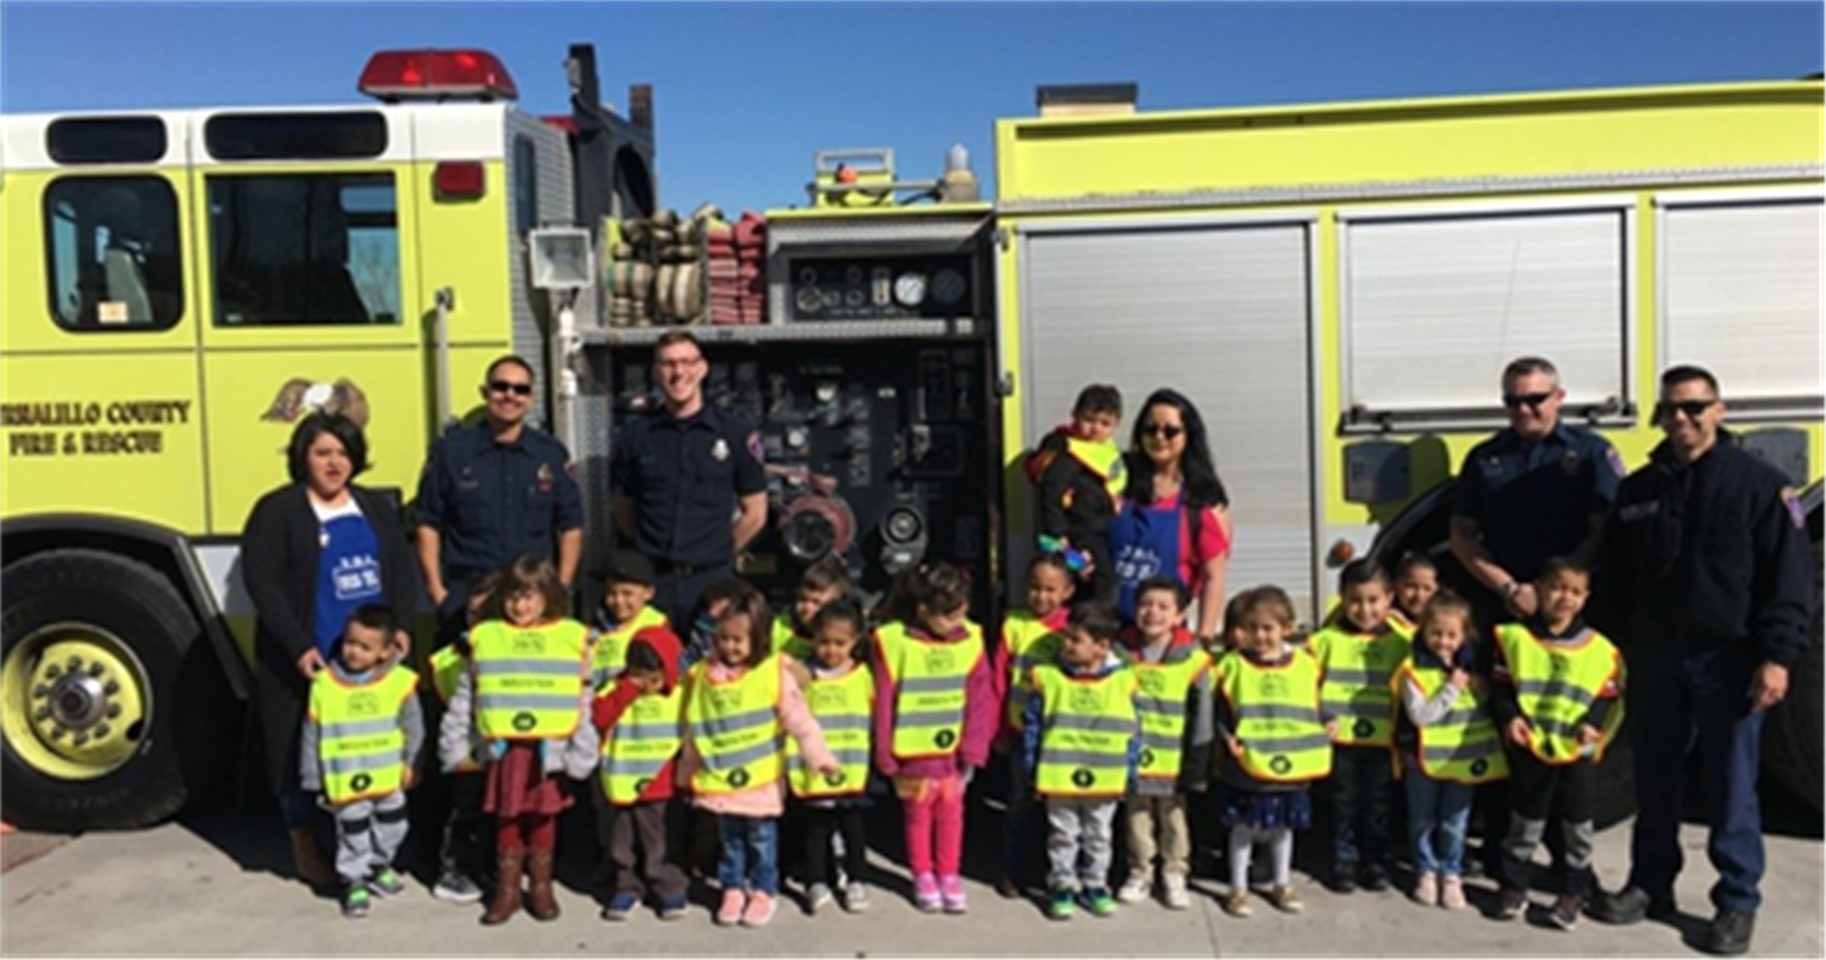 A picture of kids and firemen in front of a fire truck